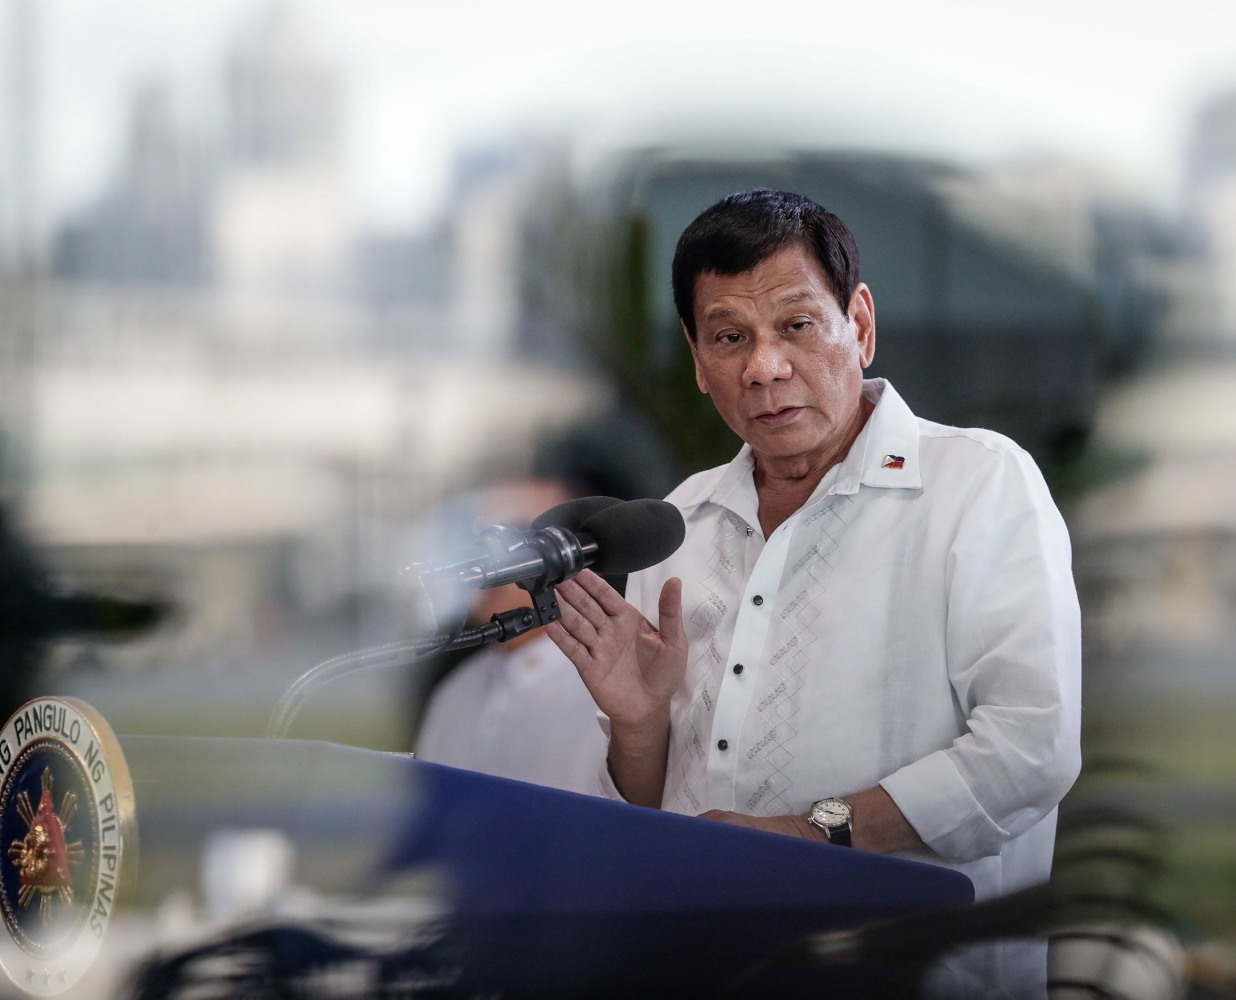 Duterte on meeting with Trump: We did not talk about EJK